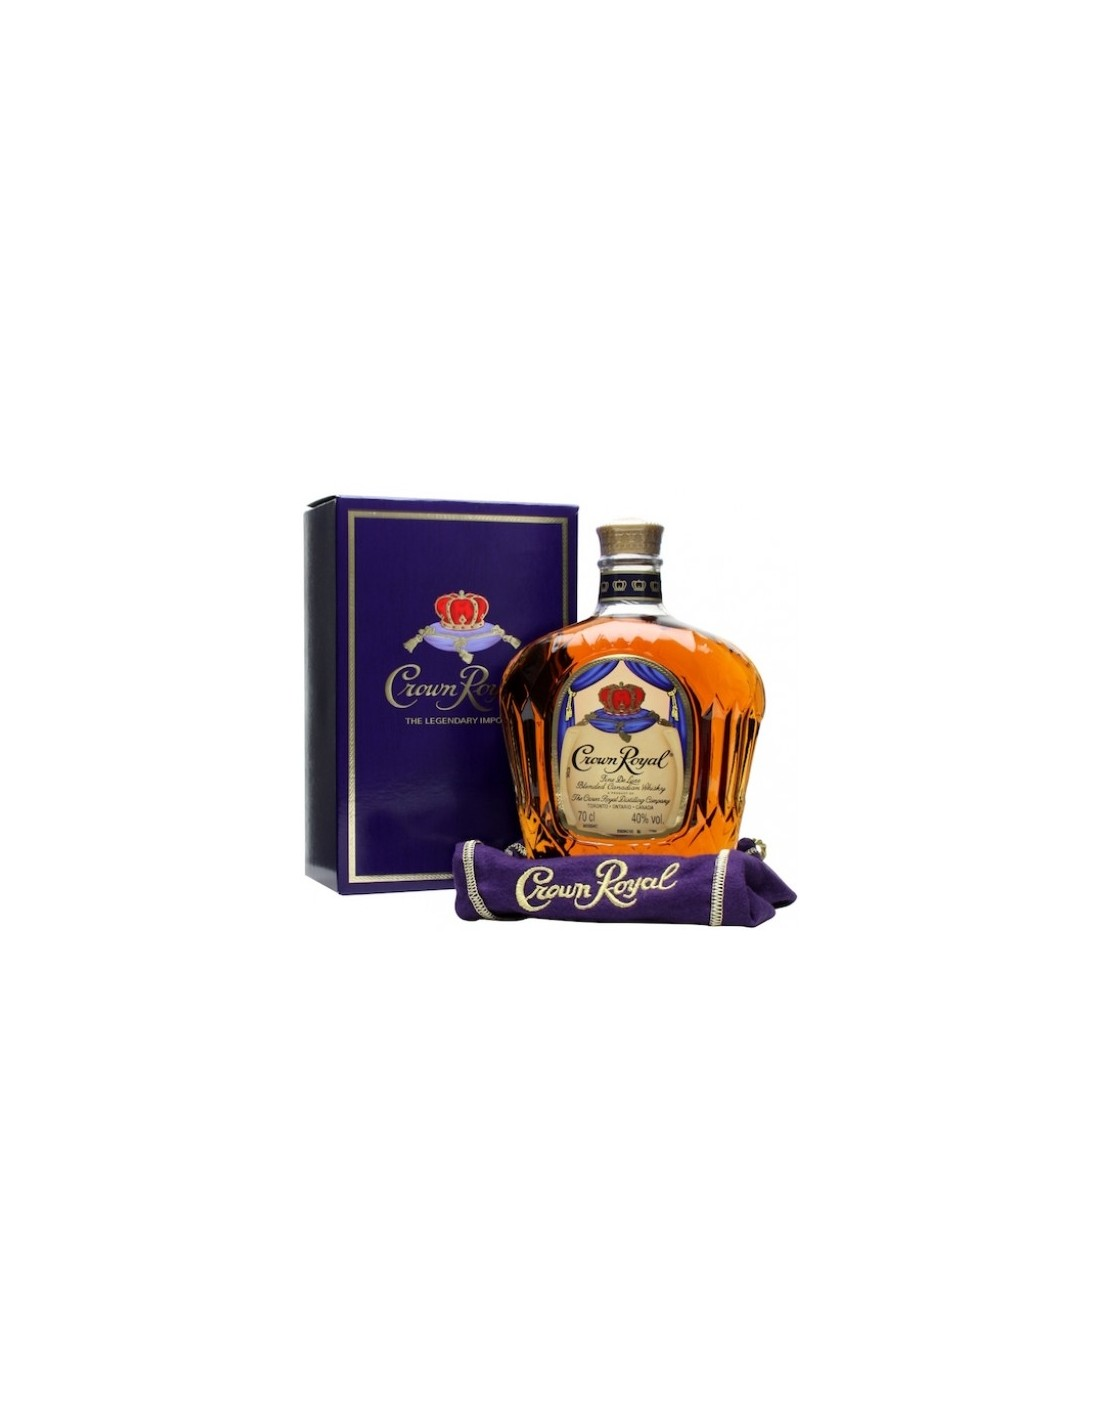 Whisky Crown Royal, 40% alc., 0.7L, Canada